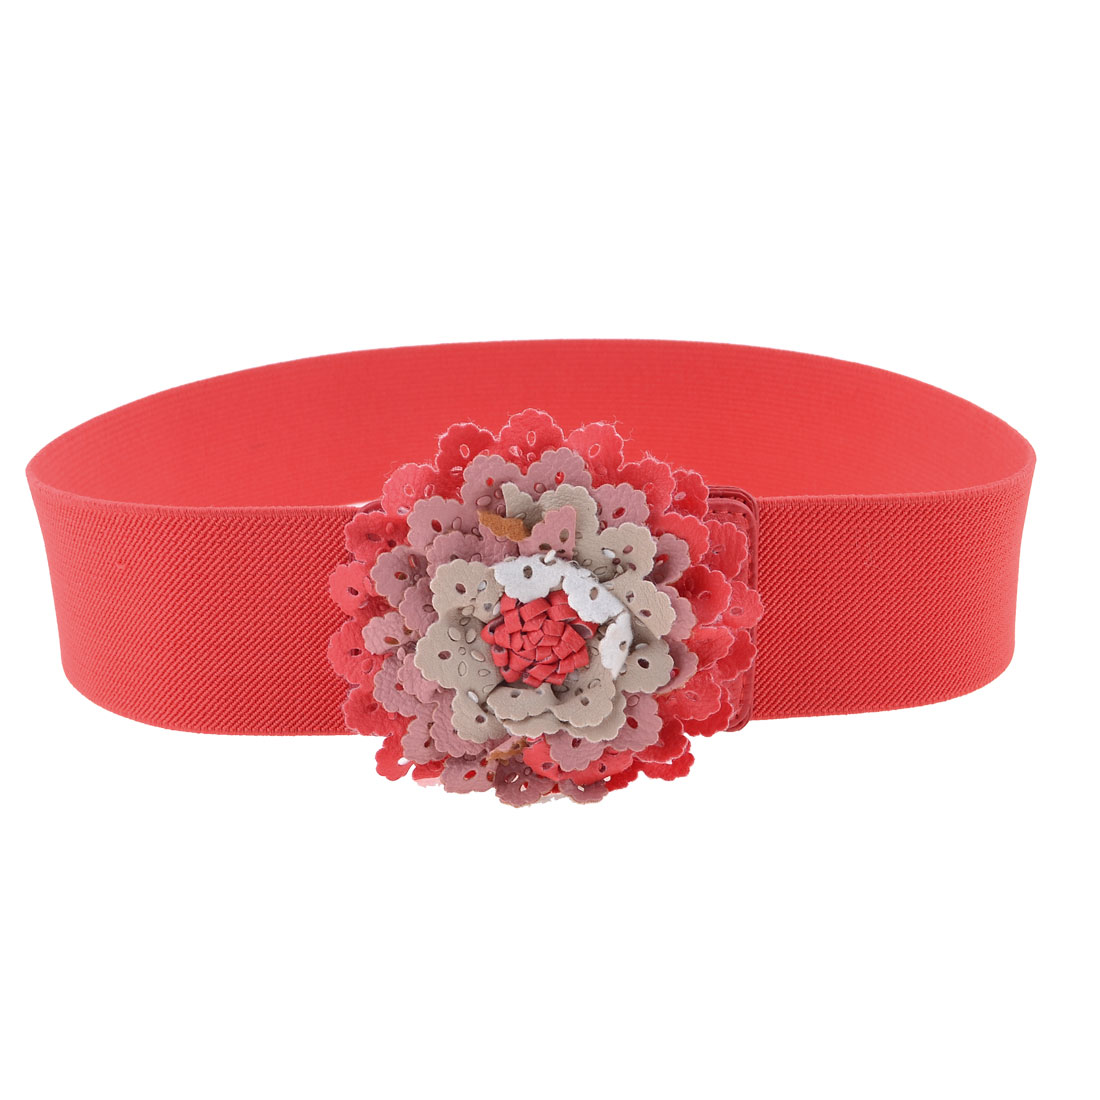 Press Stud Button Brick Red Faux Leather Flower Detail Stretchy Waist Belt for Lady